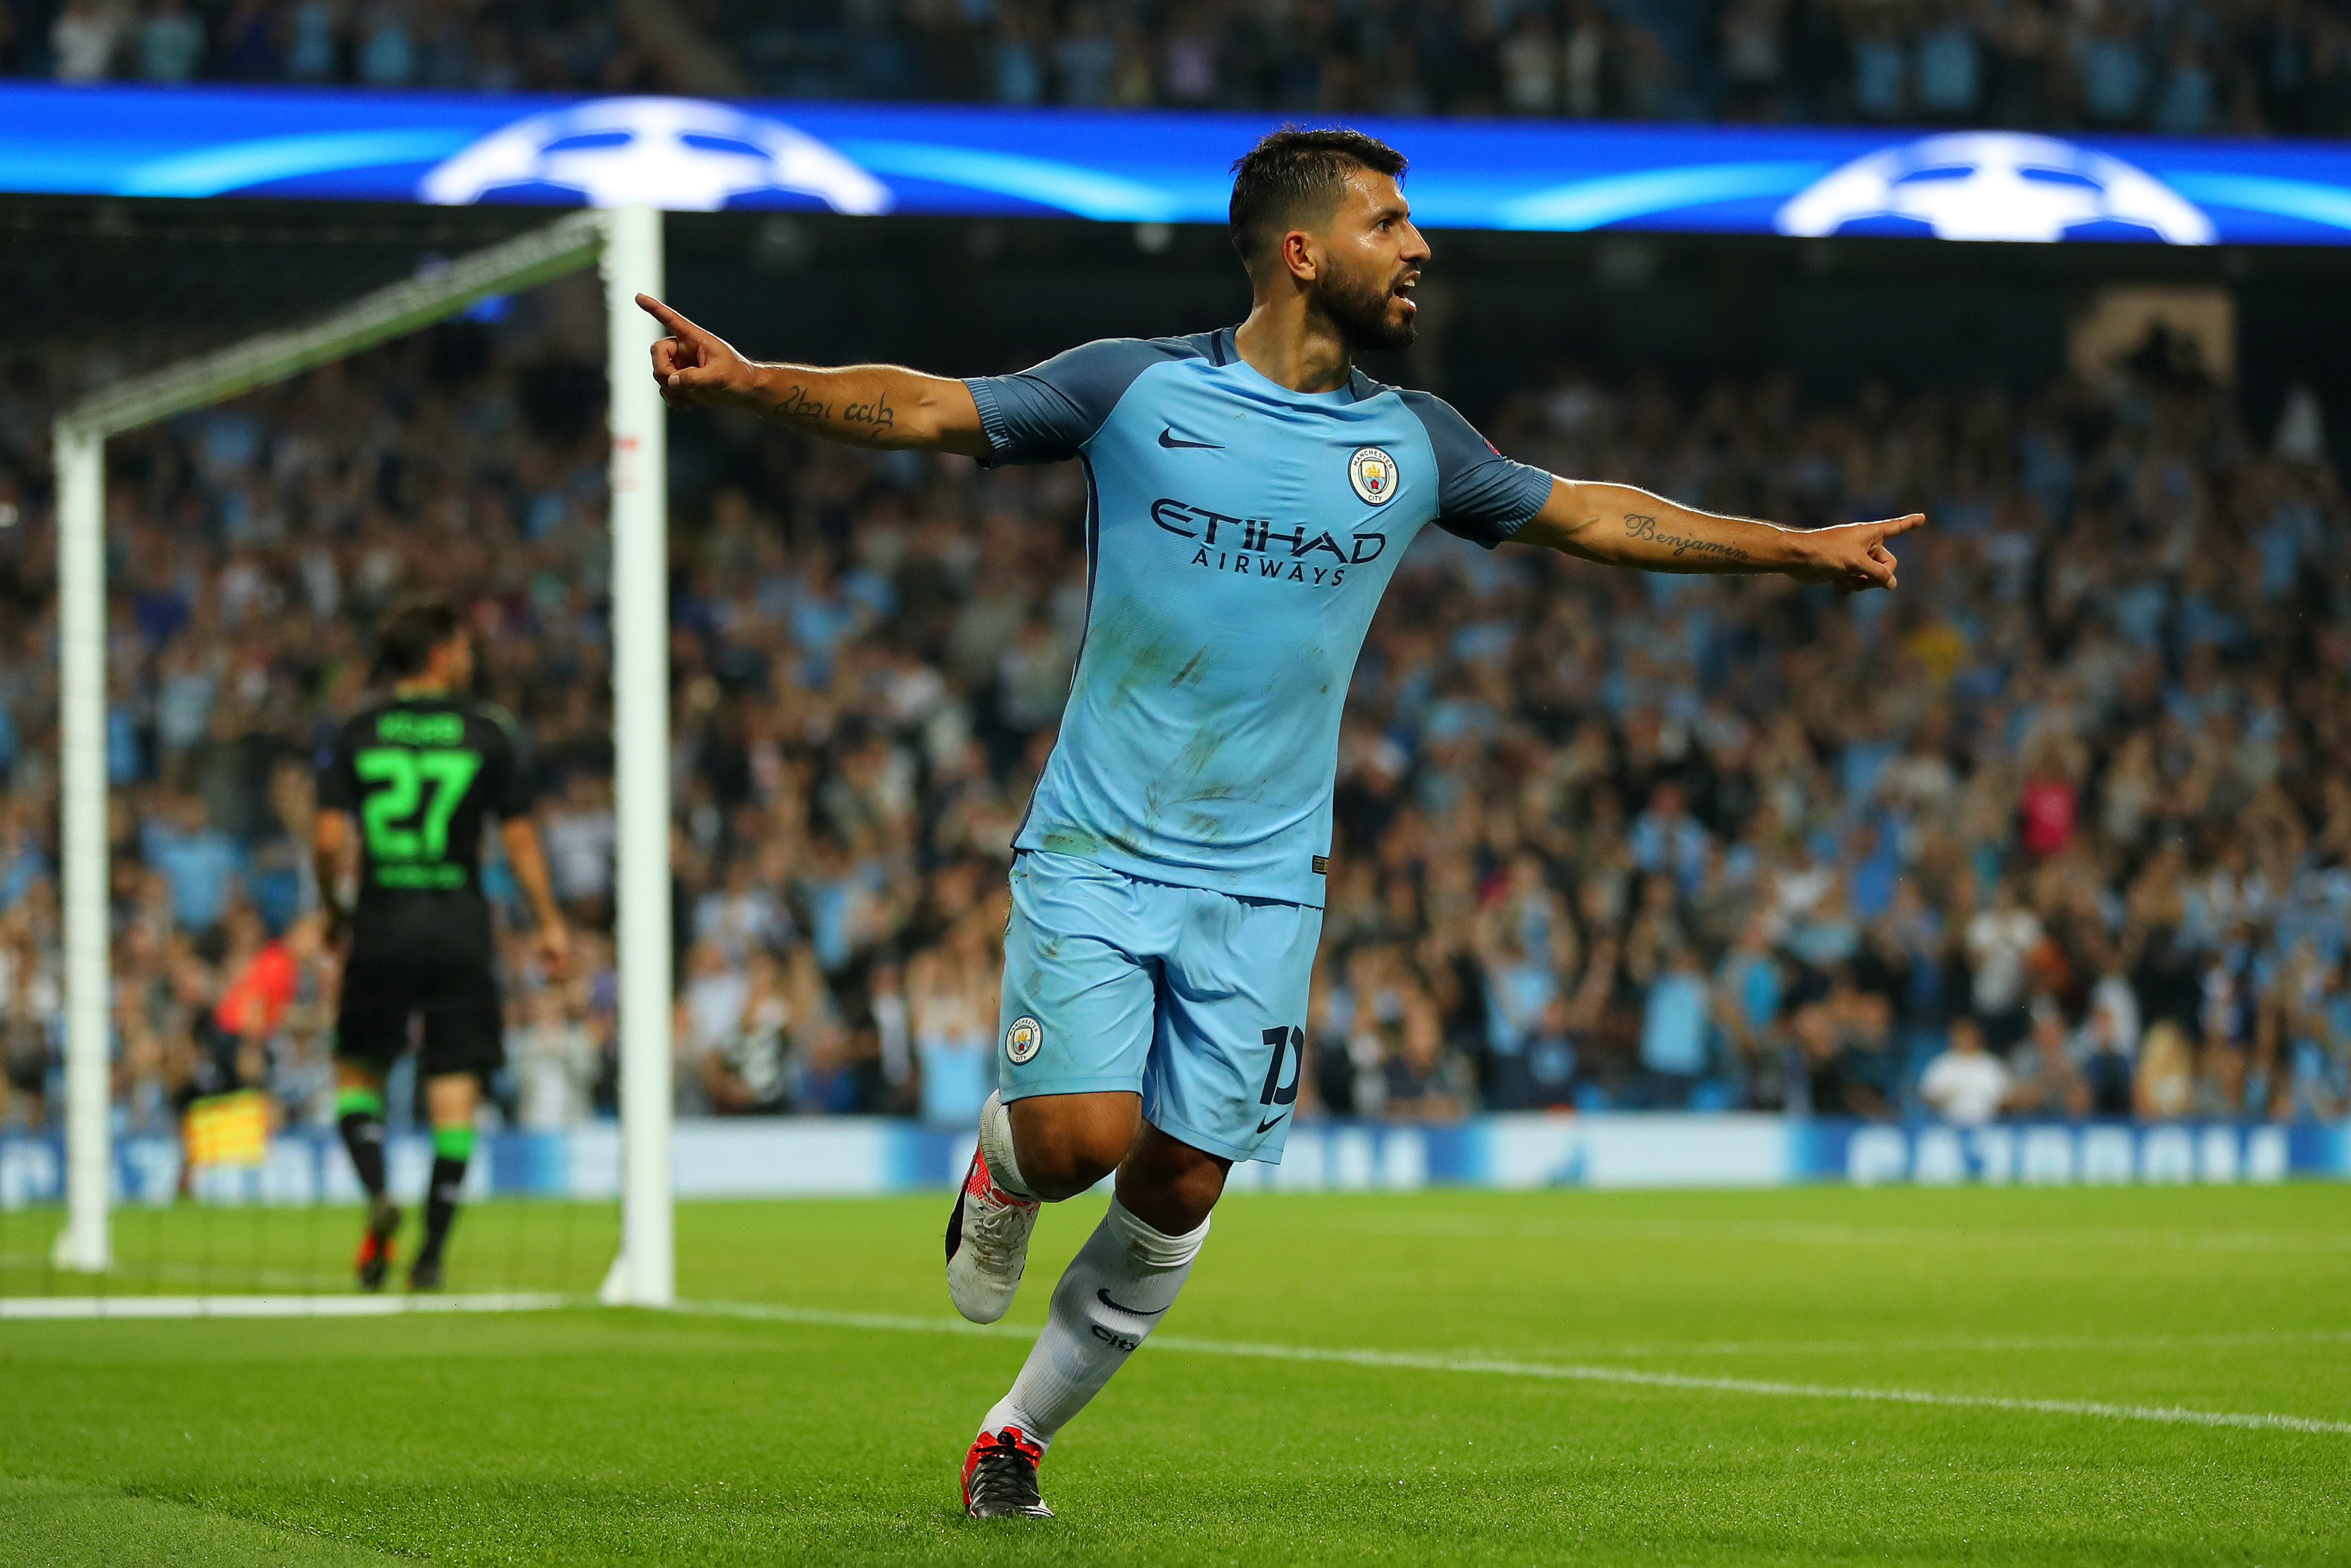 MANCHESTER, ENGLAND - SEPTEMBER 14: Sergio Aguero of Manchester City celebrates scoring during the UEFA Champions League match between Manchester City FC and VfL Borussia Moenchengladbach at Etihad Stadium on September 14, 2016 in Manchester, England. (Photo by Richard Heathcote/Getty Images)